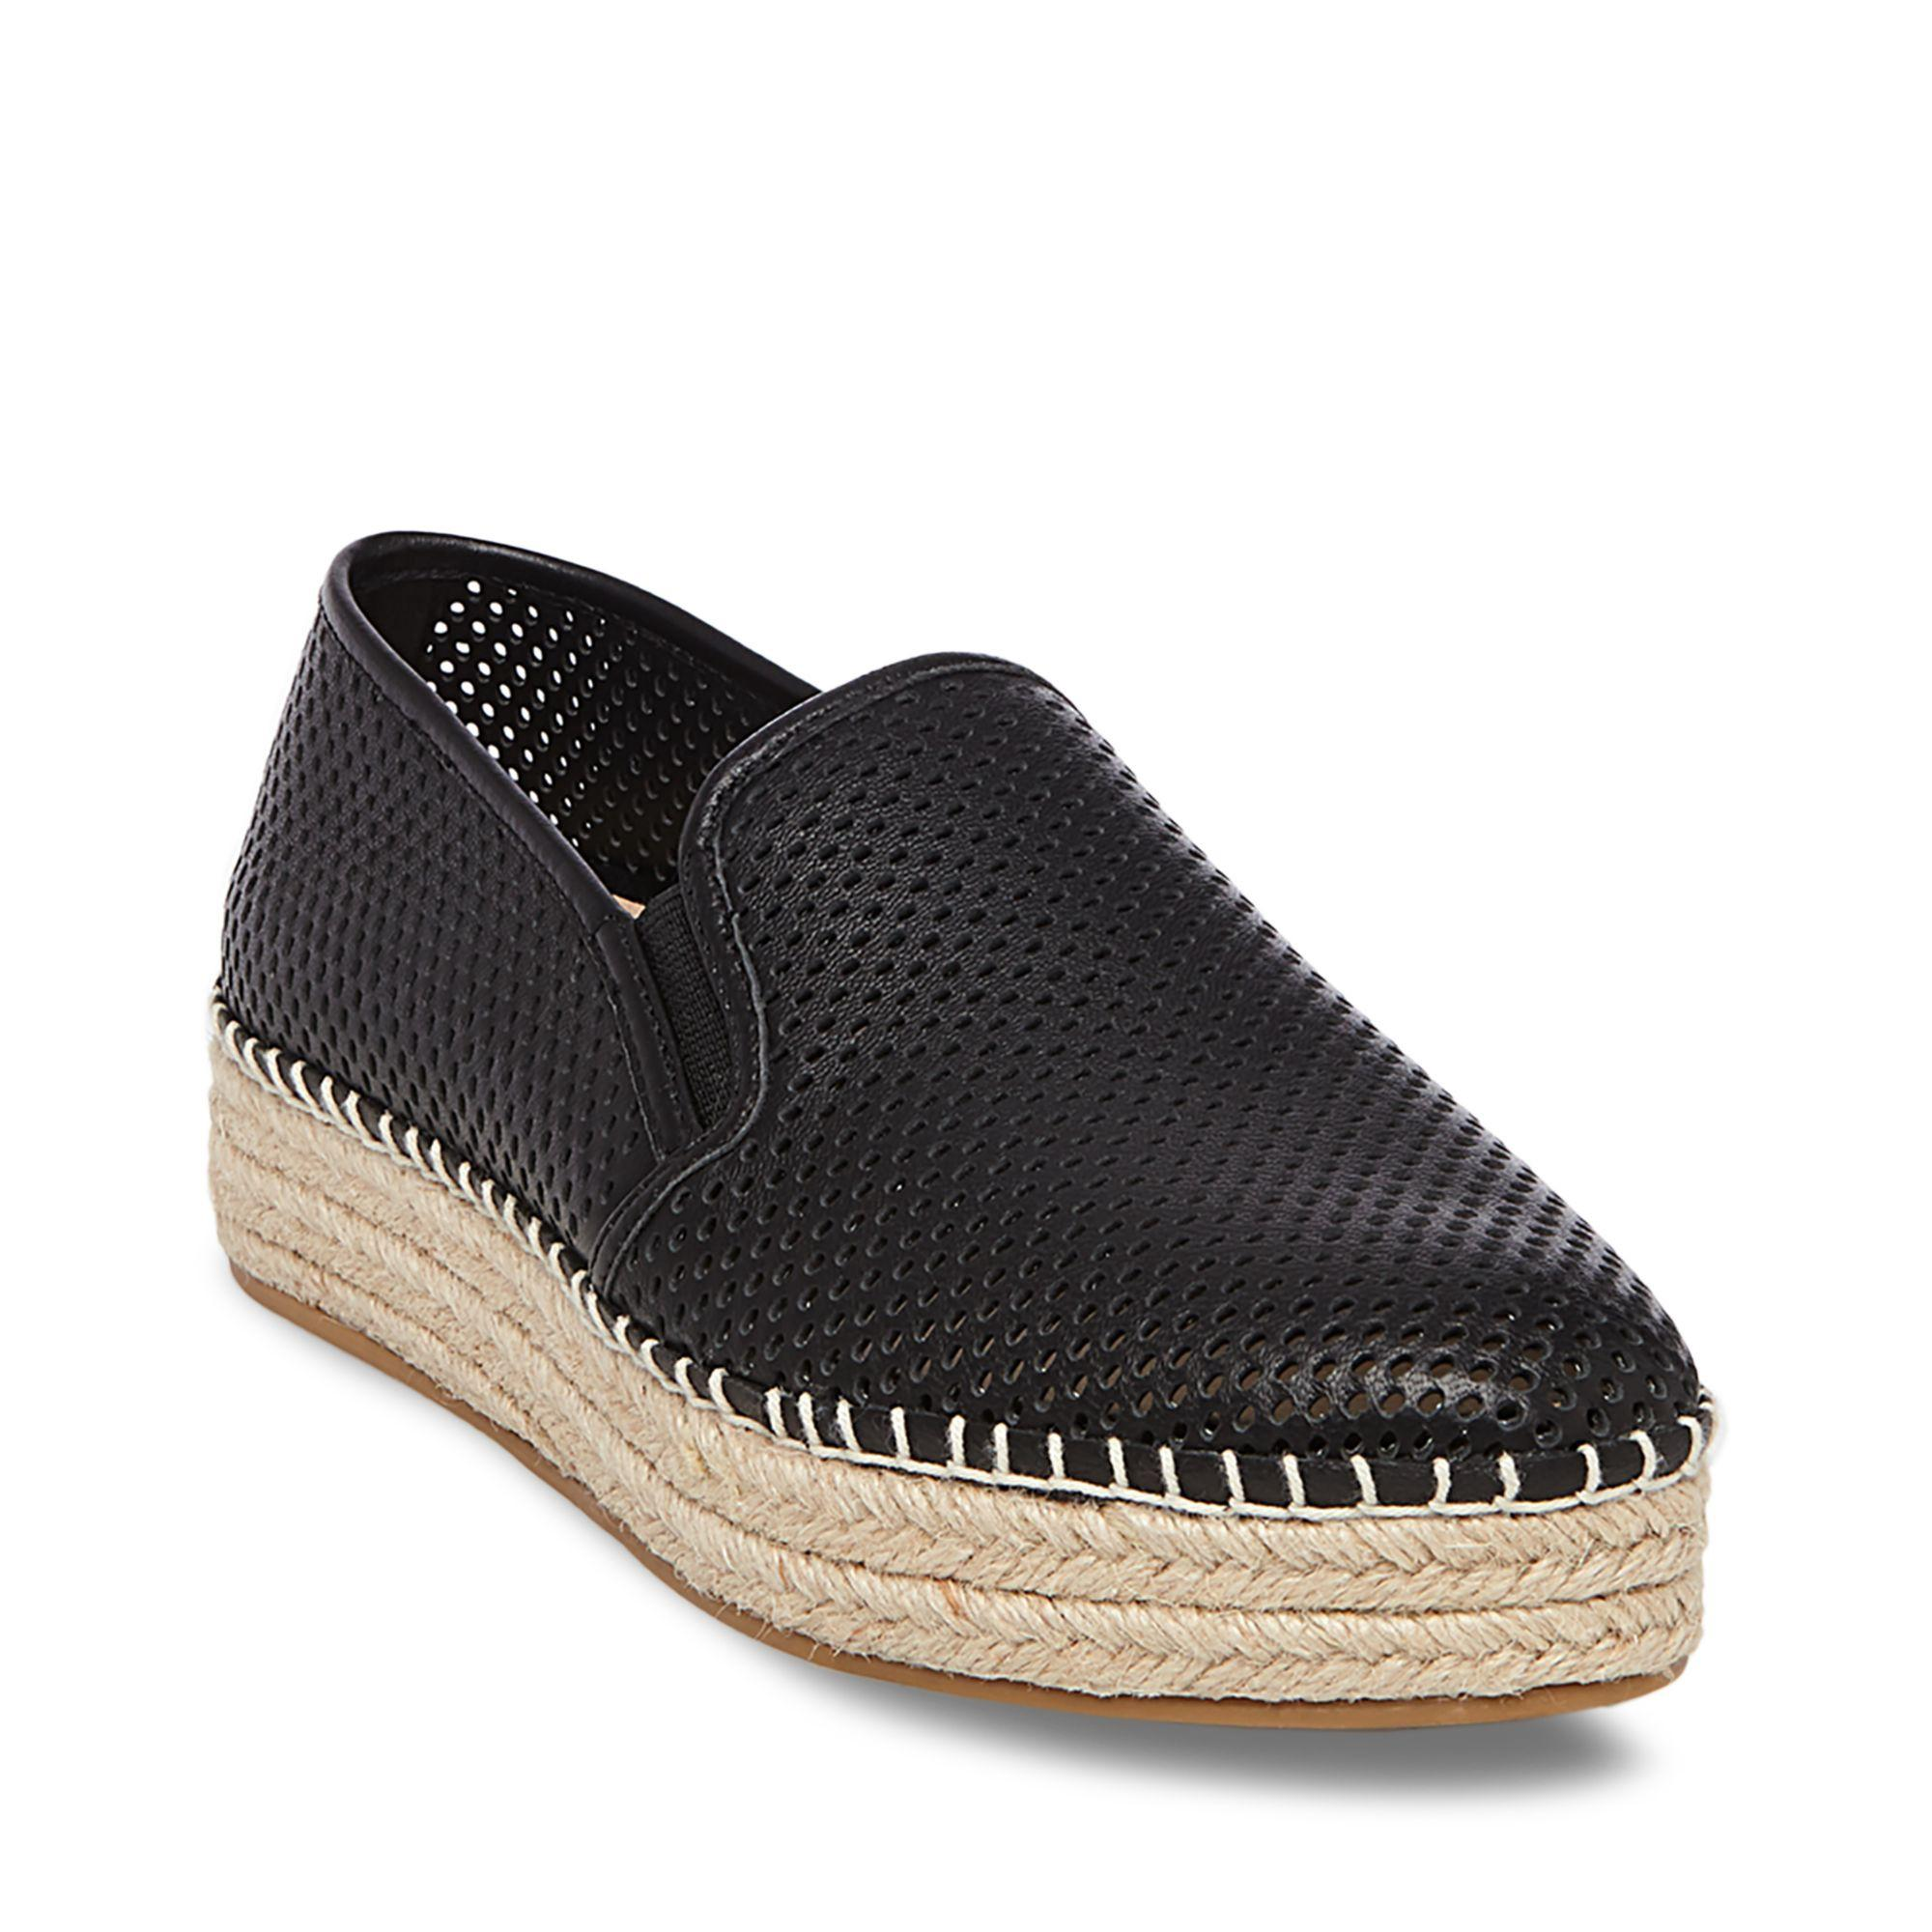 485507eec4e Wright Perforated Platform Espadrille in Black Leather